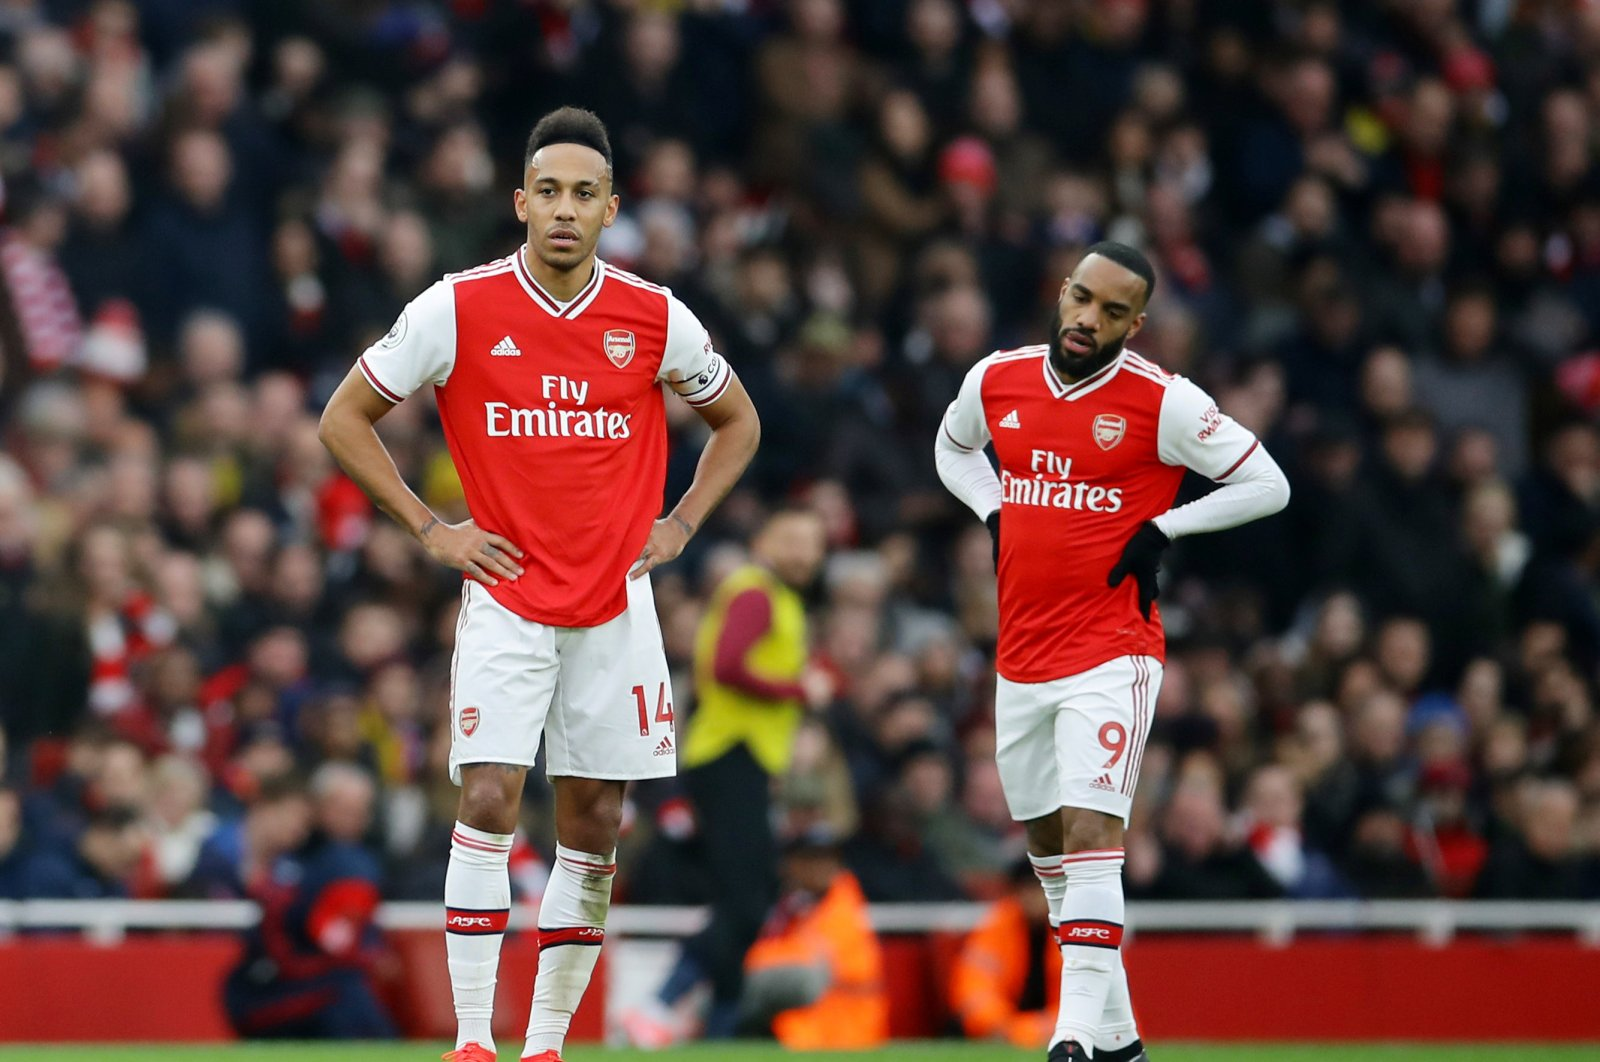 Arsenal's Aubameyang and Lacazette during a match against West Ham, March 7, 2020. (Reuters Photo)